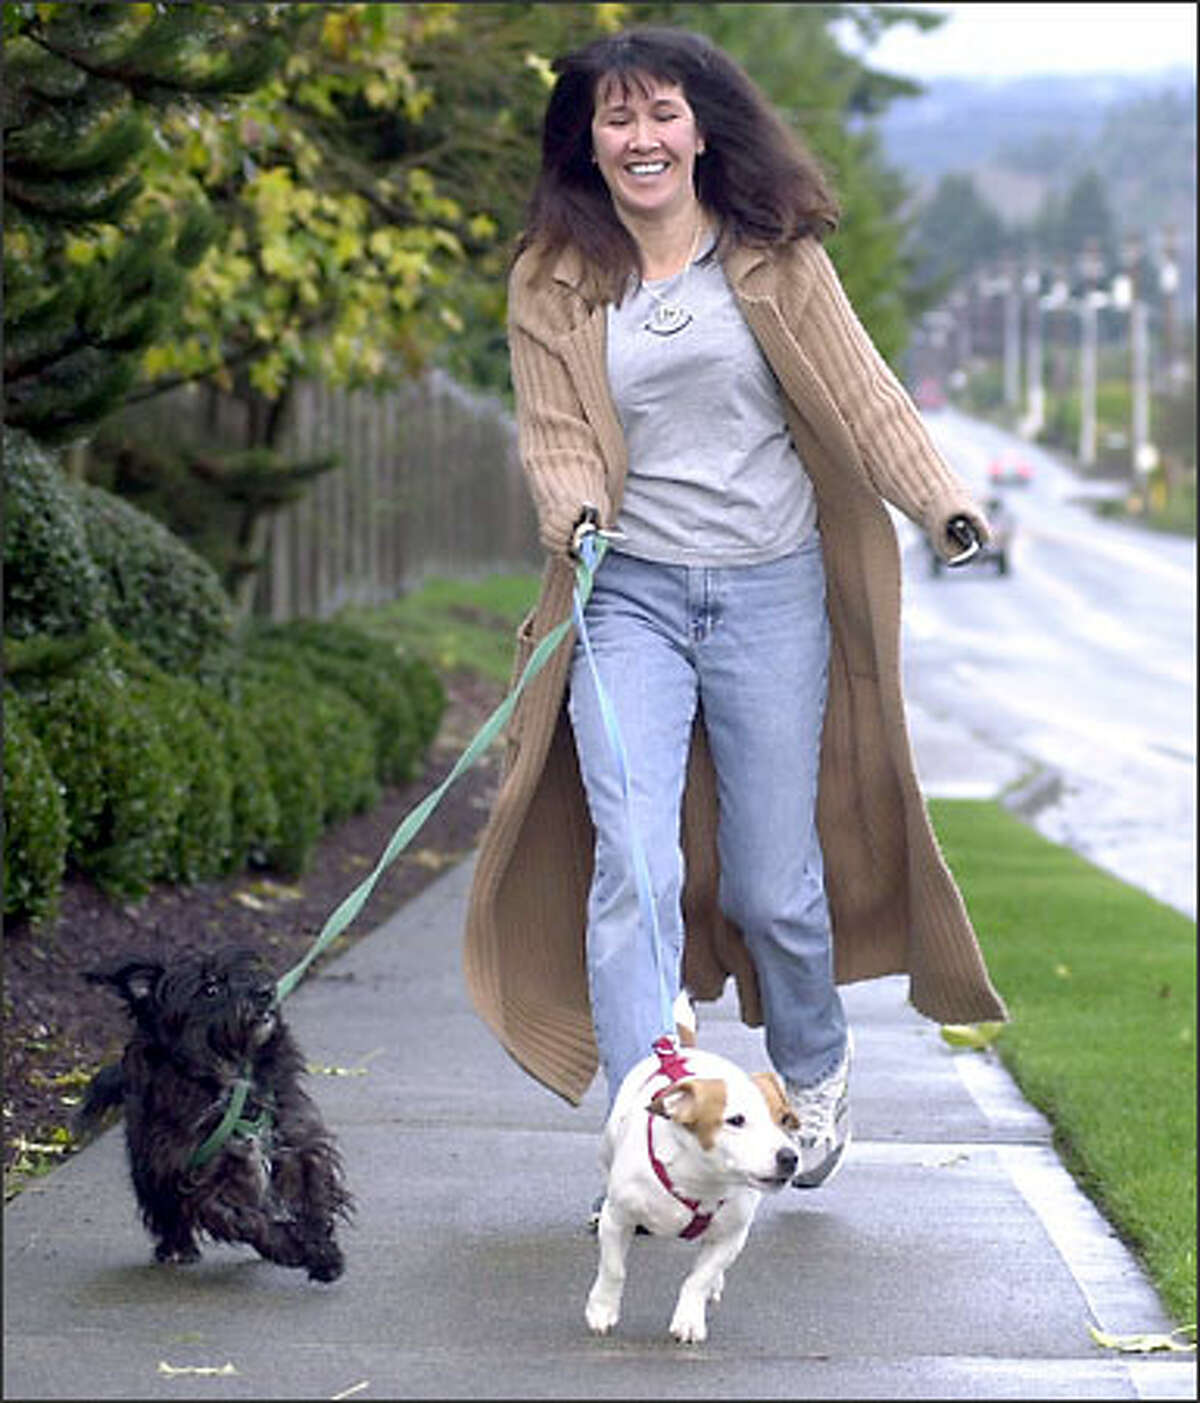 Vincent walks her two dogs, Danny, left, and Mikey. Vincent and her two sons also have hamsters, fish and an ill-tempered parrot.